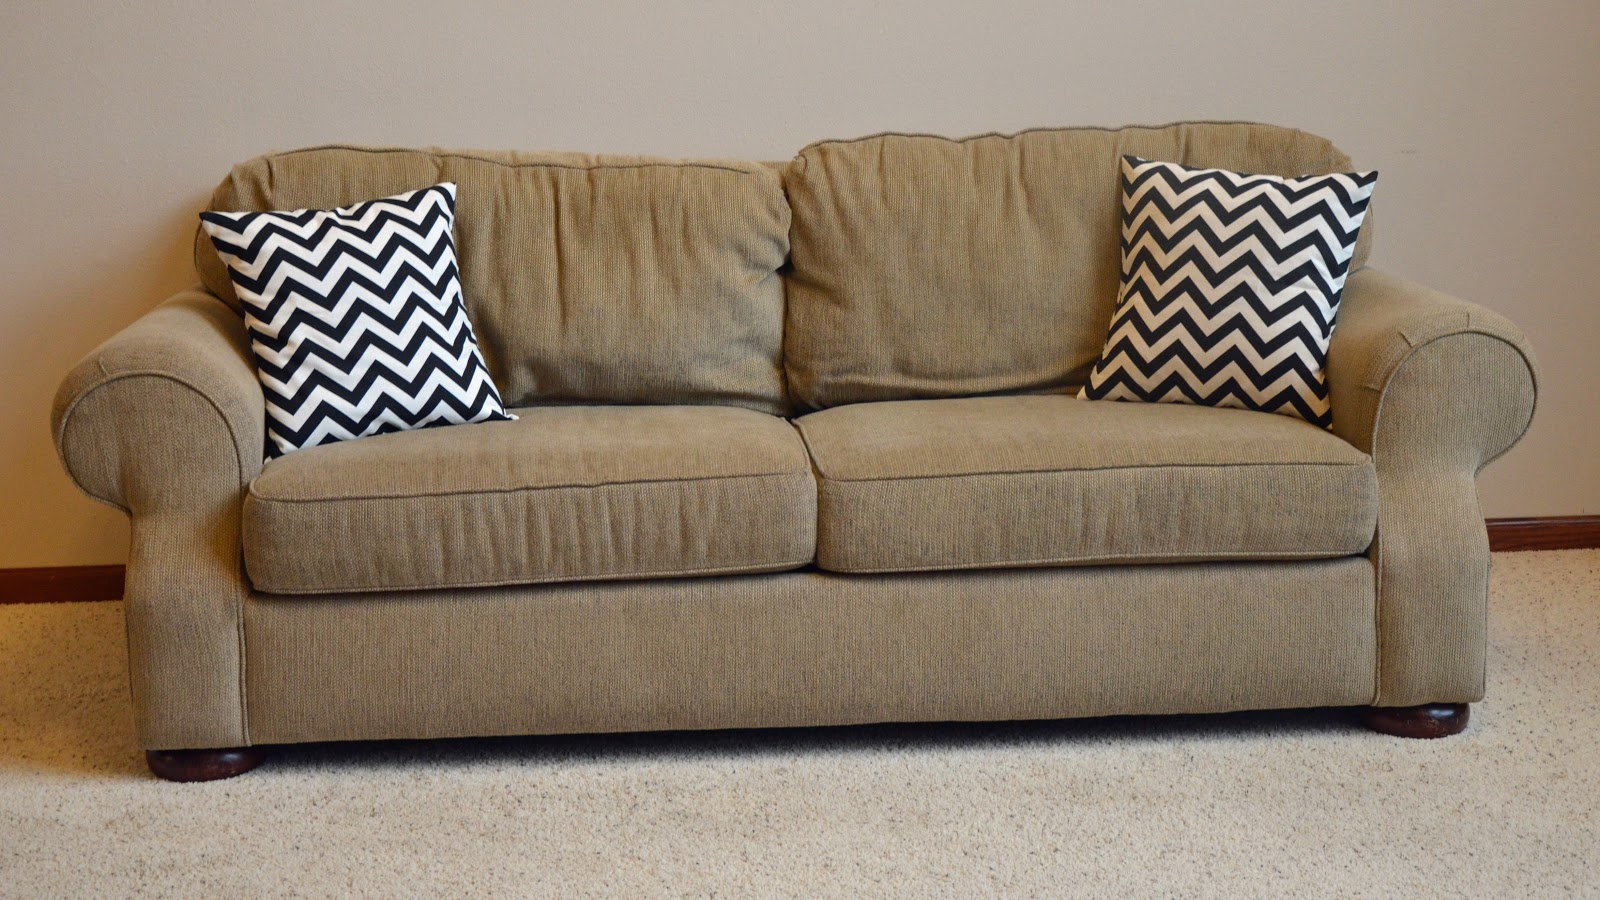 Throw Pillows Sectional : Pillows For Couches On Sale Home Improvement